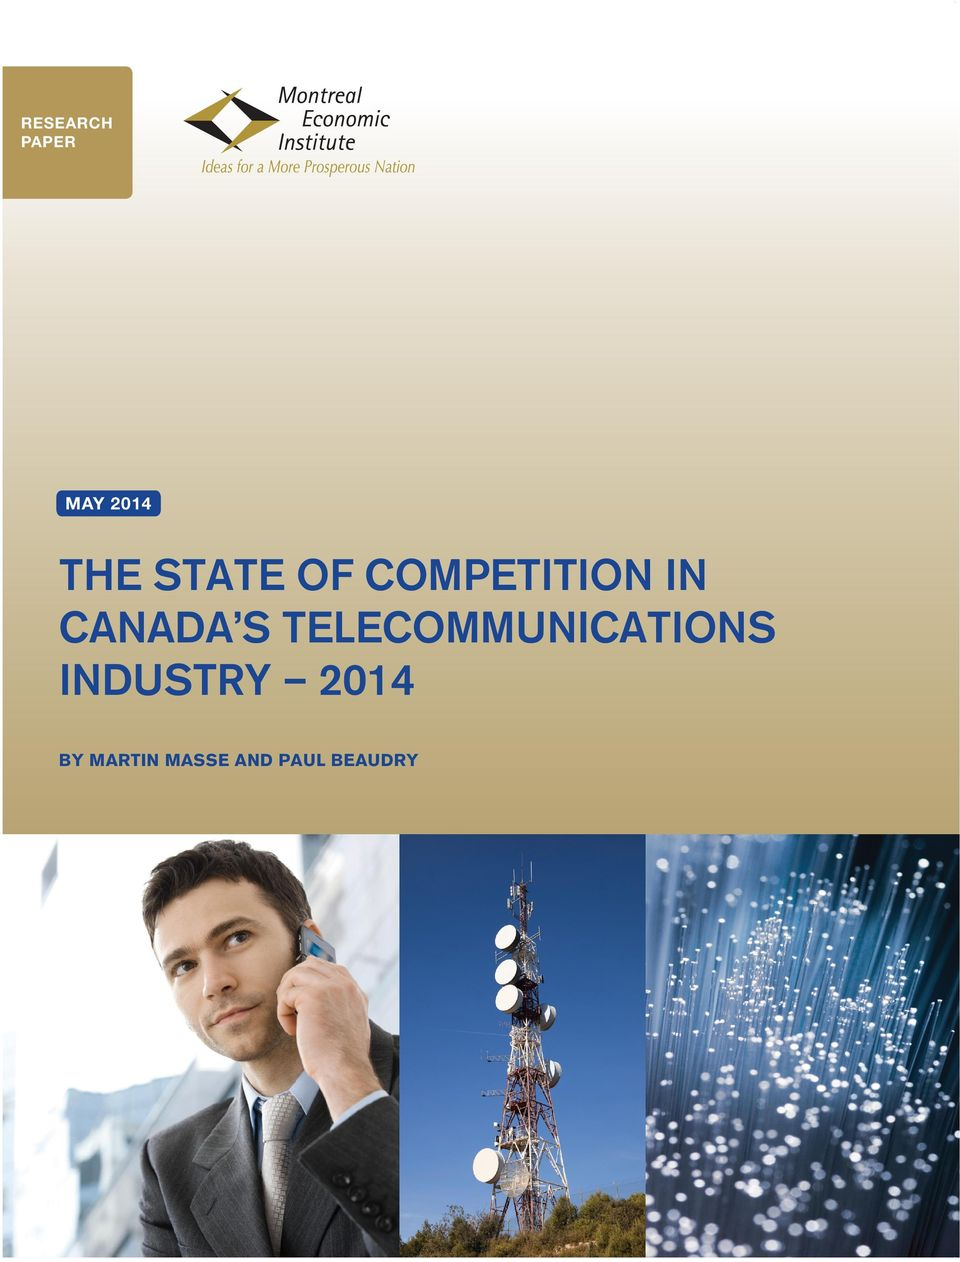 TELECOMMUNICATIONS INDUSTRY 2014 BY